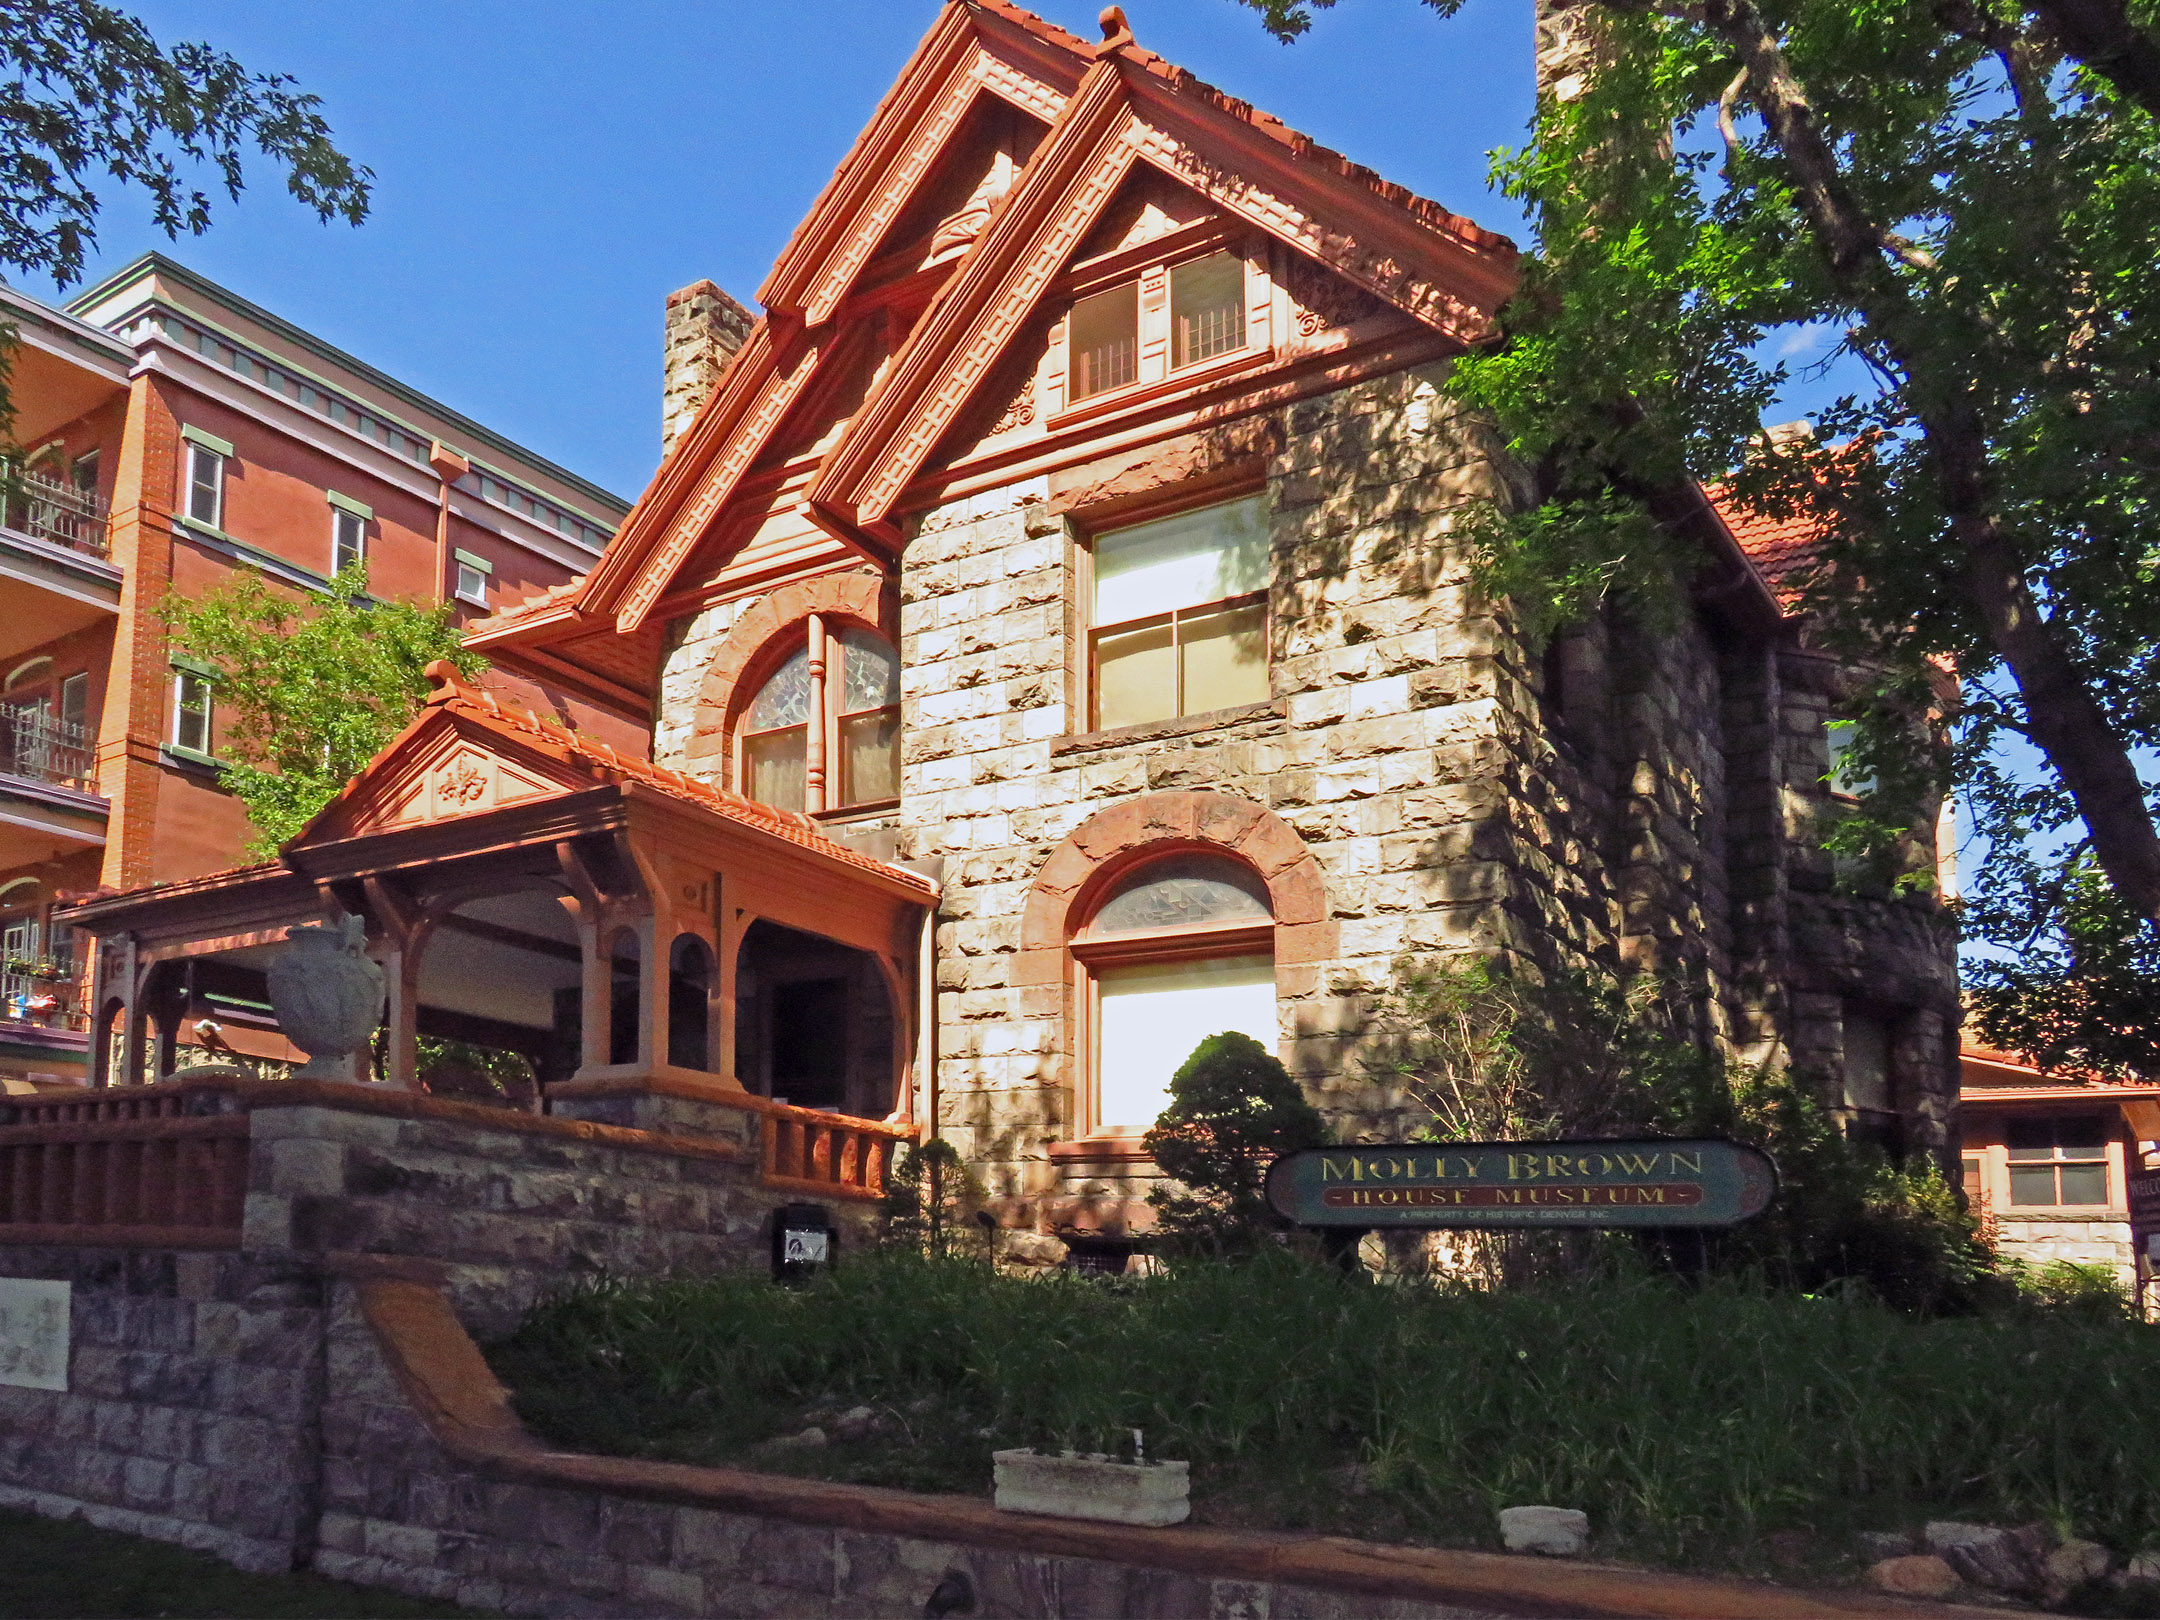 6. Molly Brown House